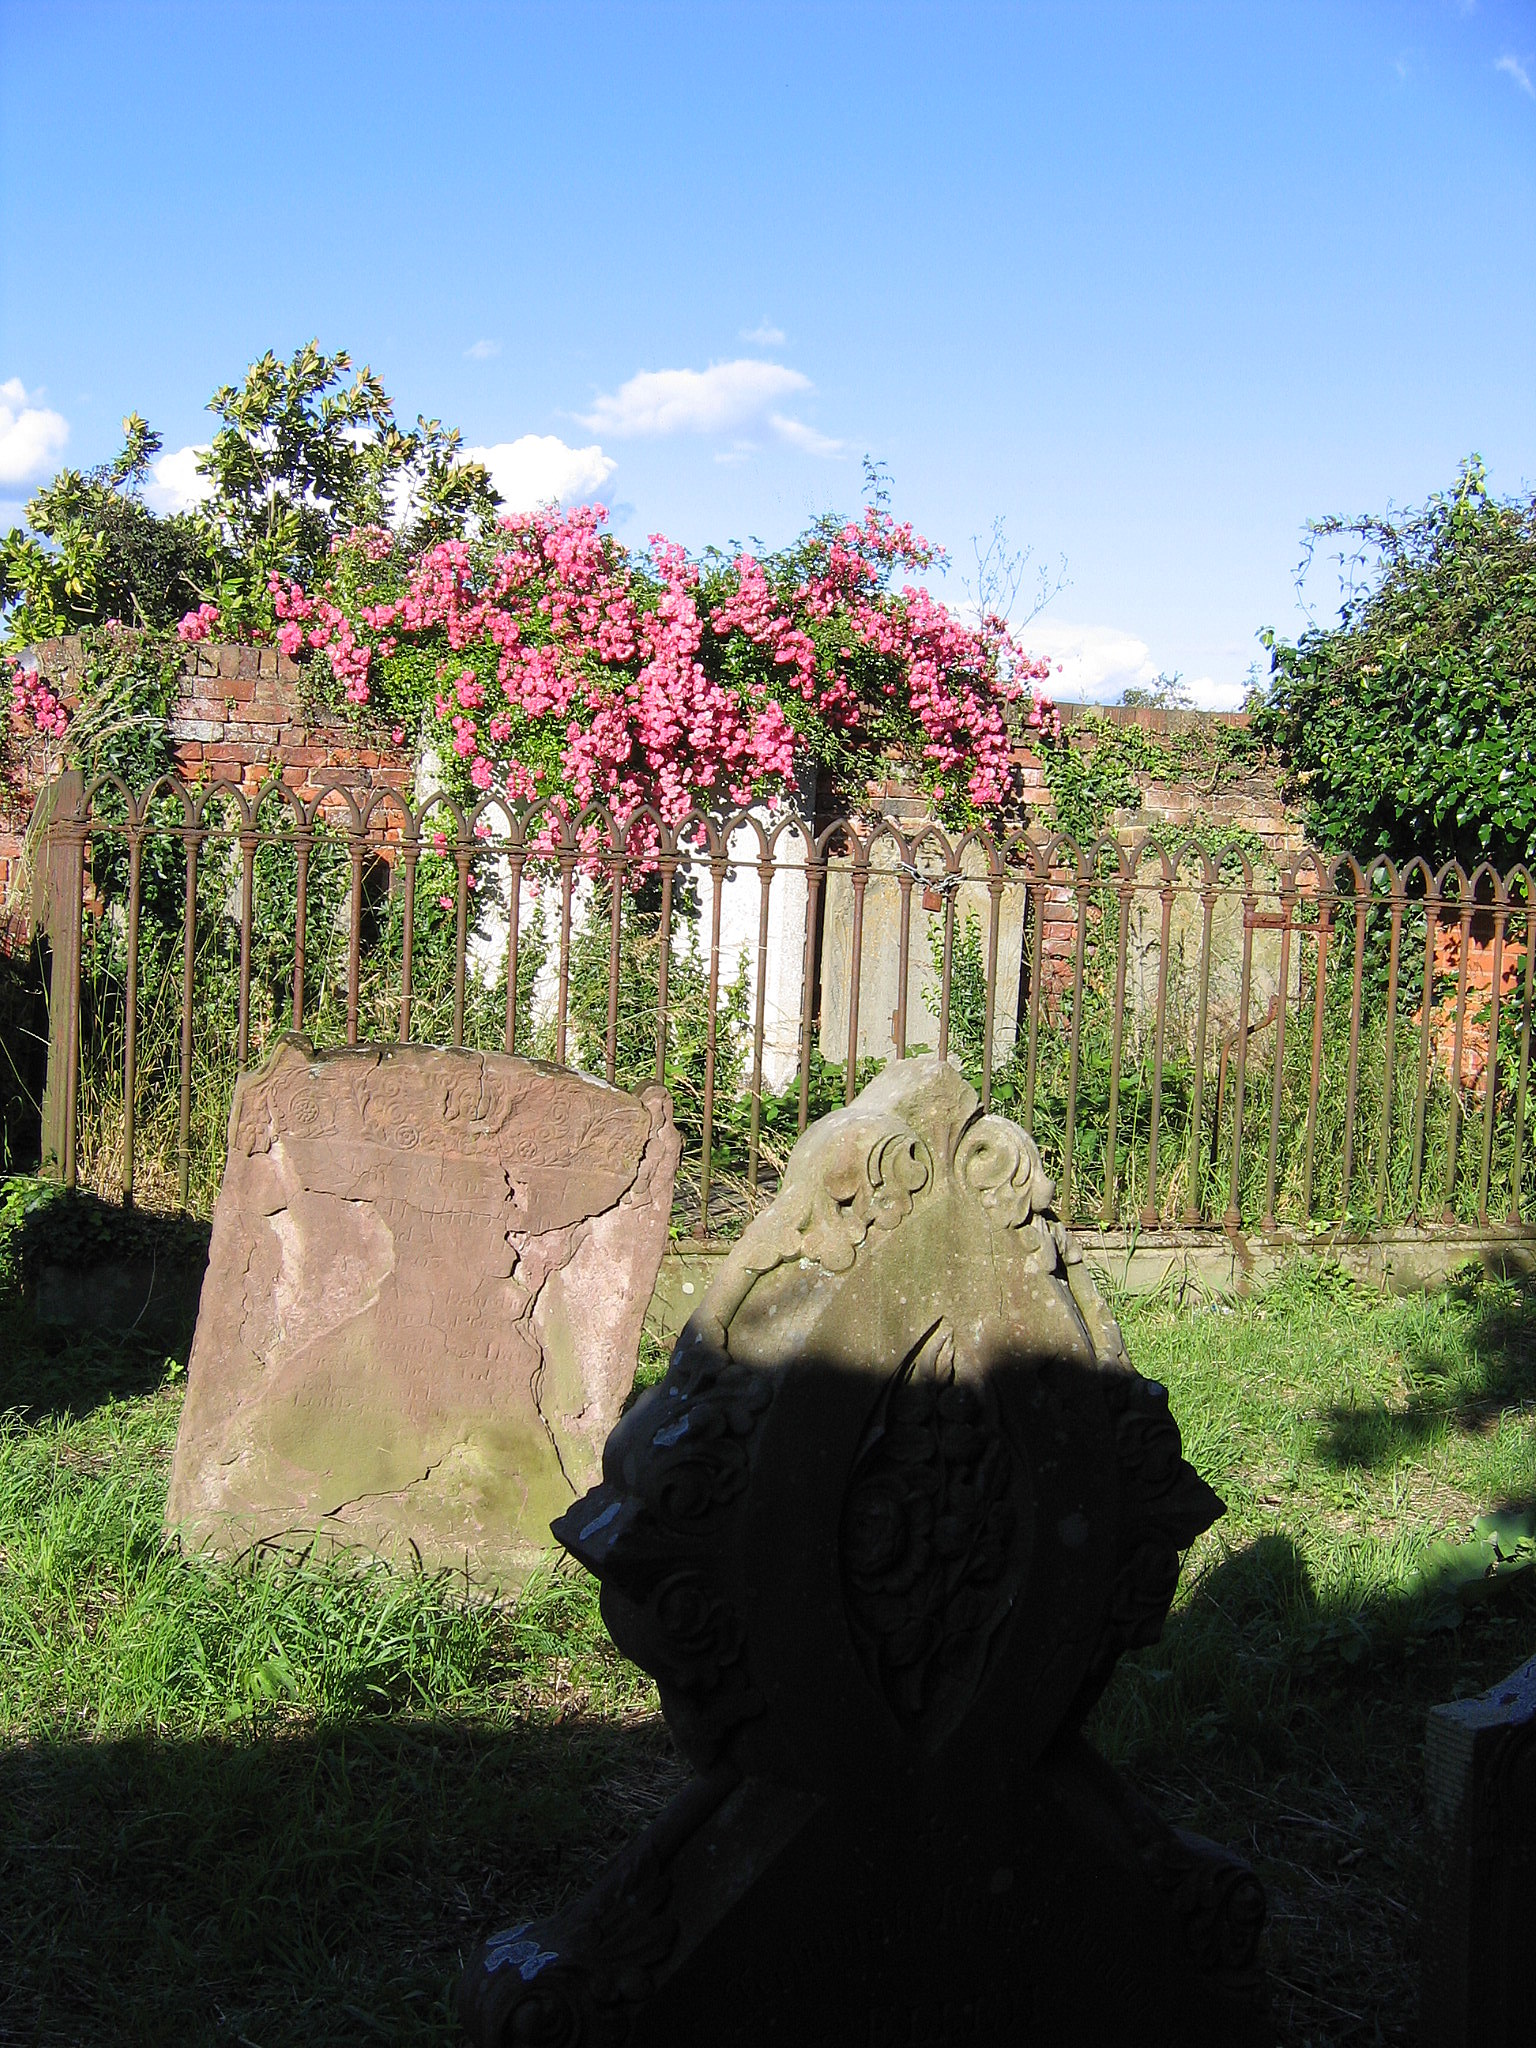 Pink Flowers and Headstones